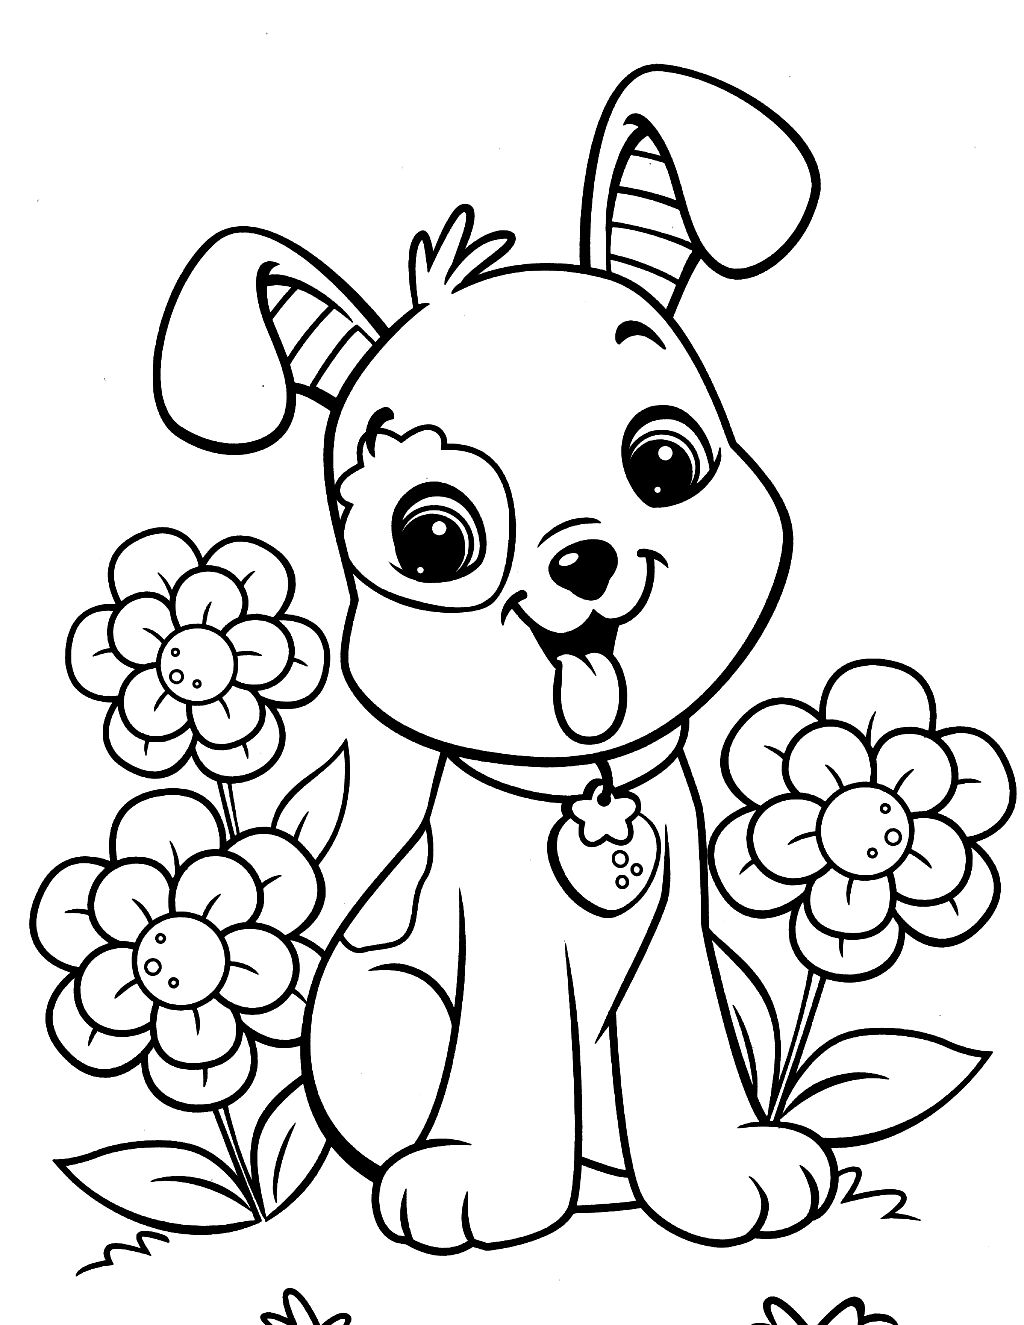 Best Dog Coloring Pages » Coloring Pages Kids